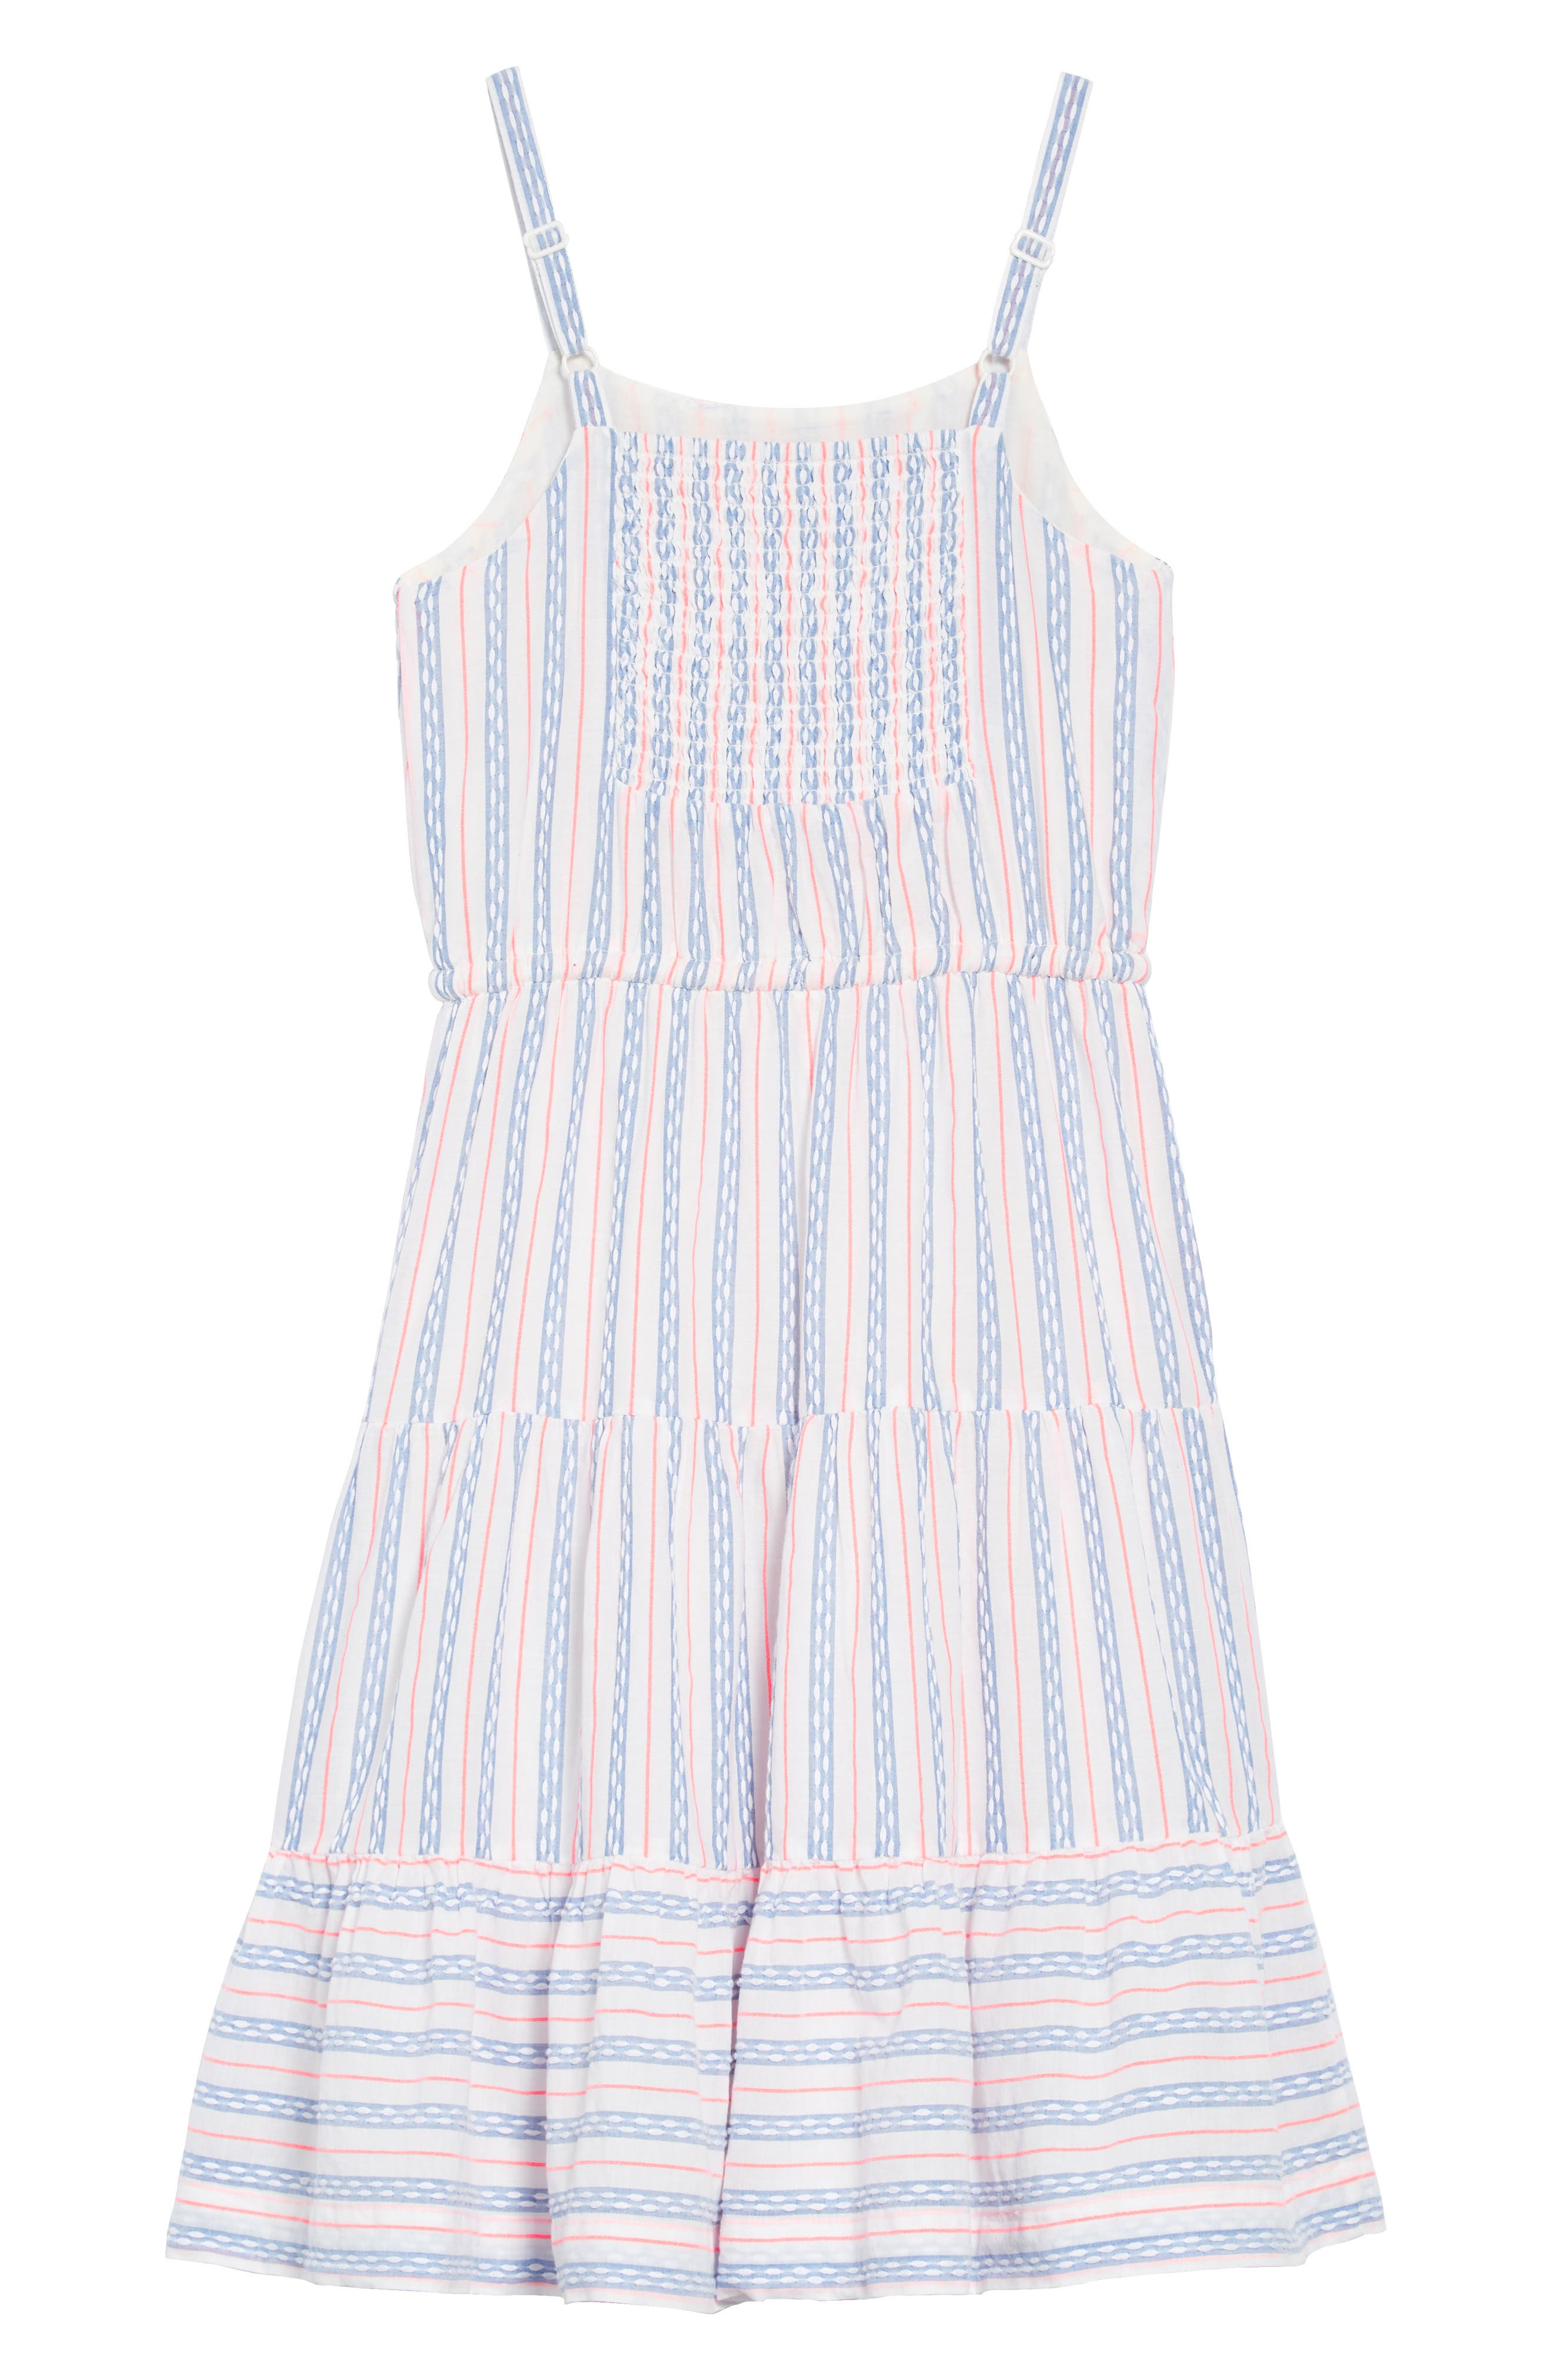 Tiered Strappy Woven Dress,                             Alternate thumbnail 2, color,                             Textured Blue And White Stripe